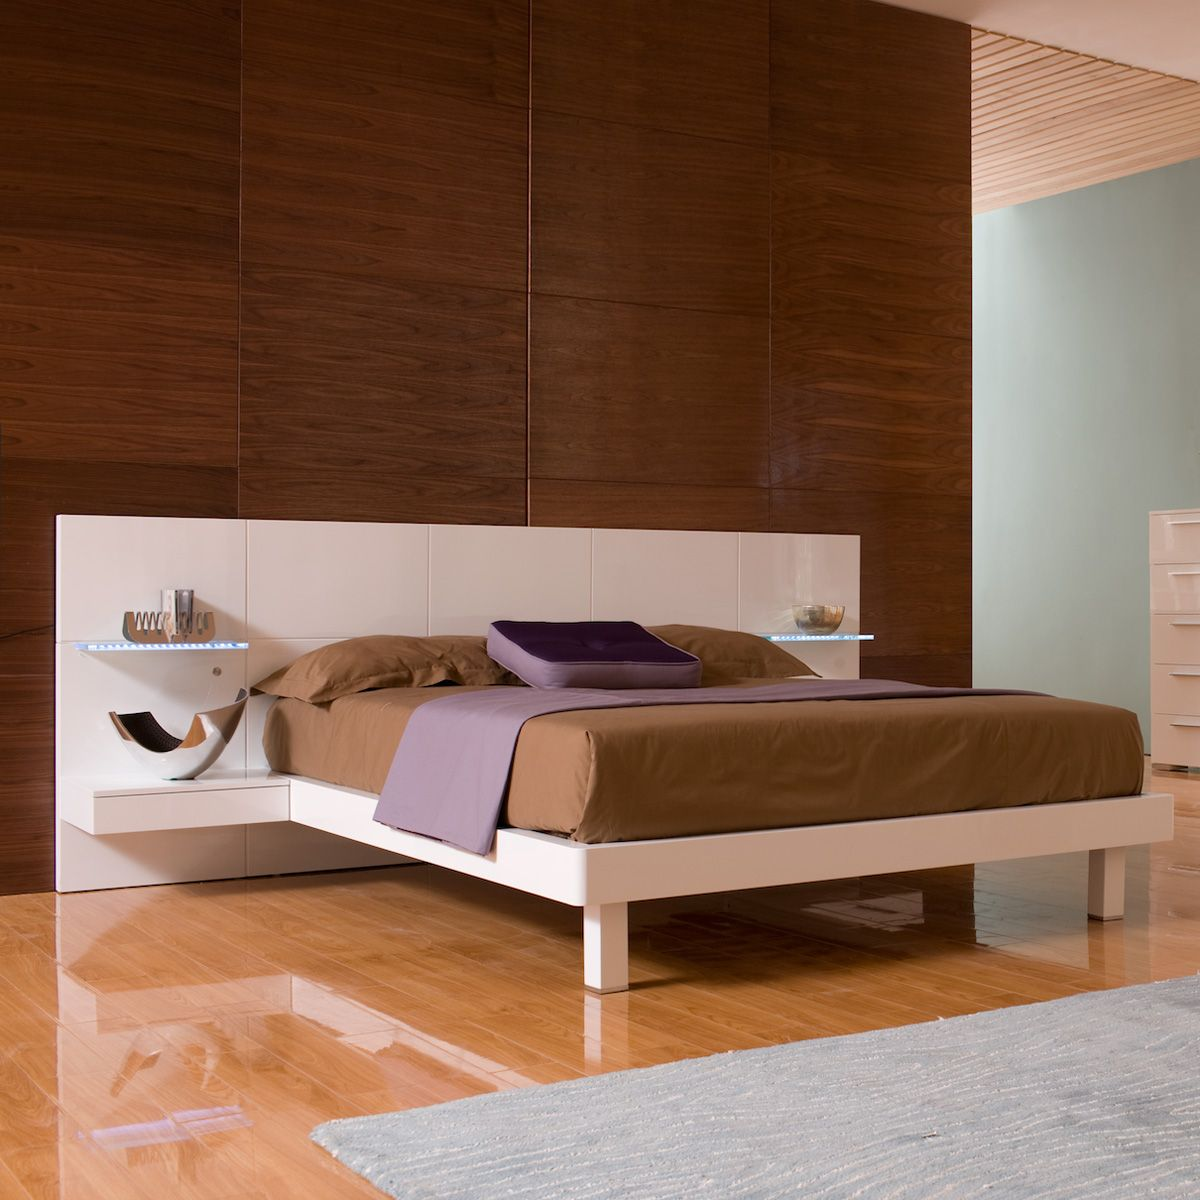 Top 30 Masculine Bedroom Part 2: Platform Bed, Bed, Bed